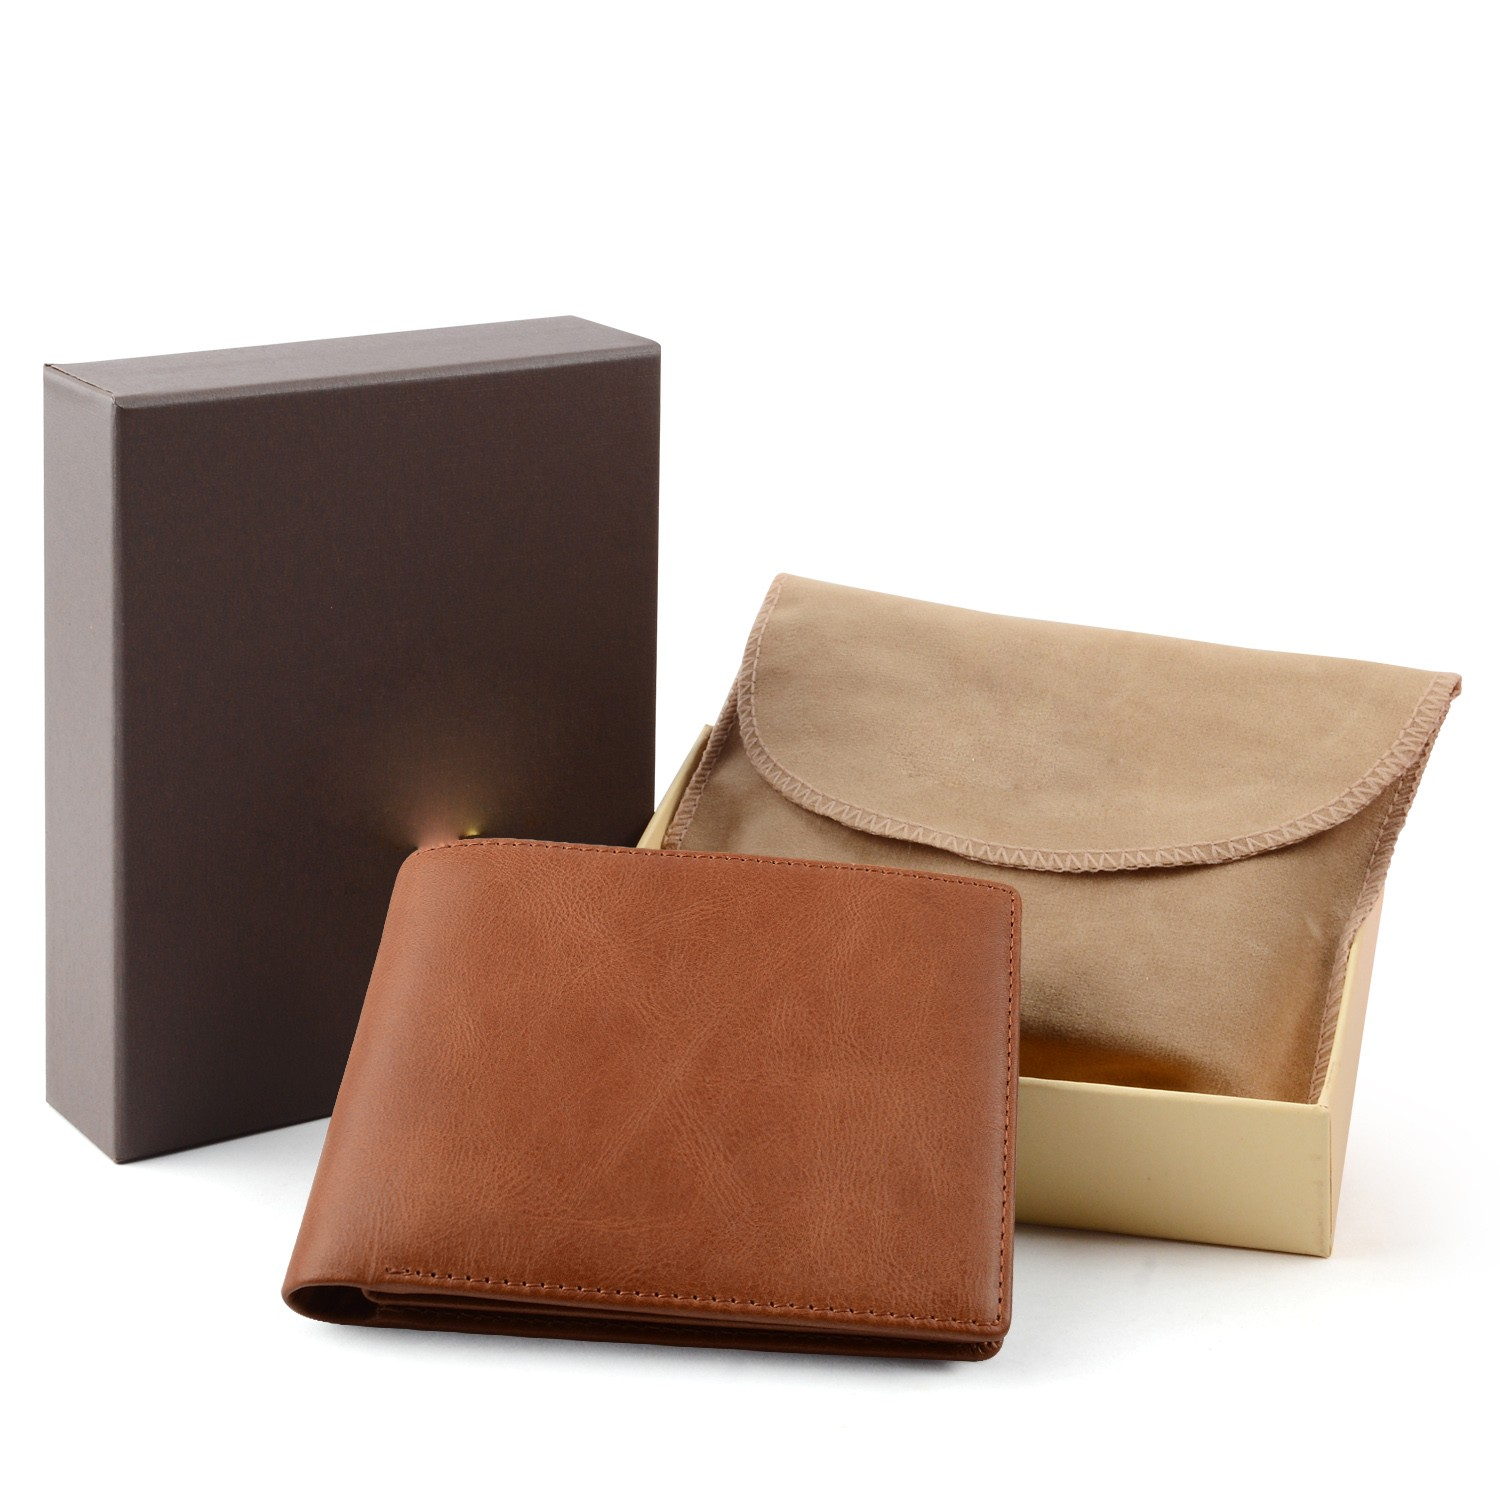 leather travel wallet large capacity for men-8